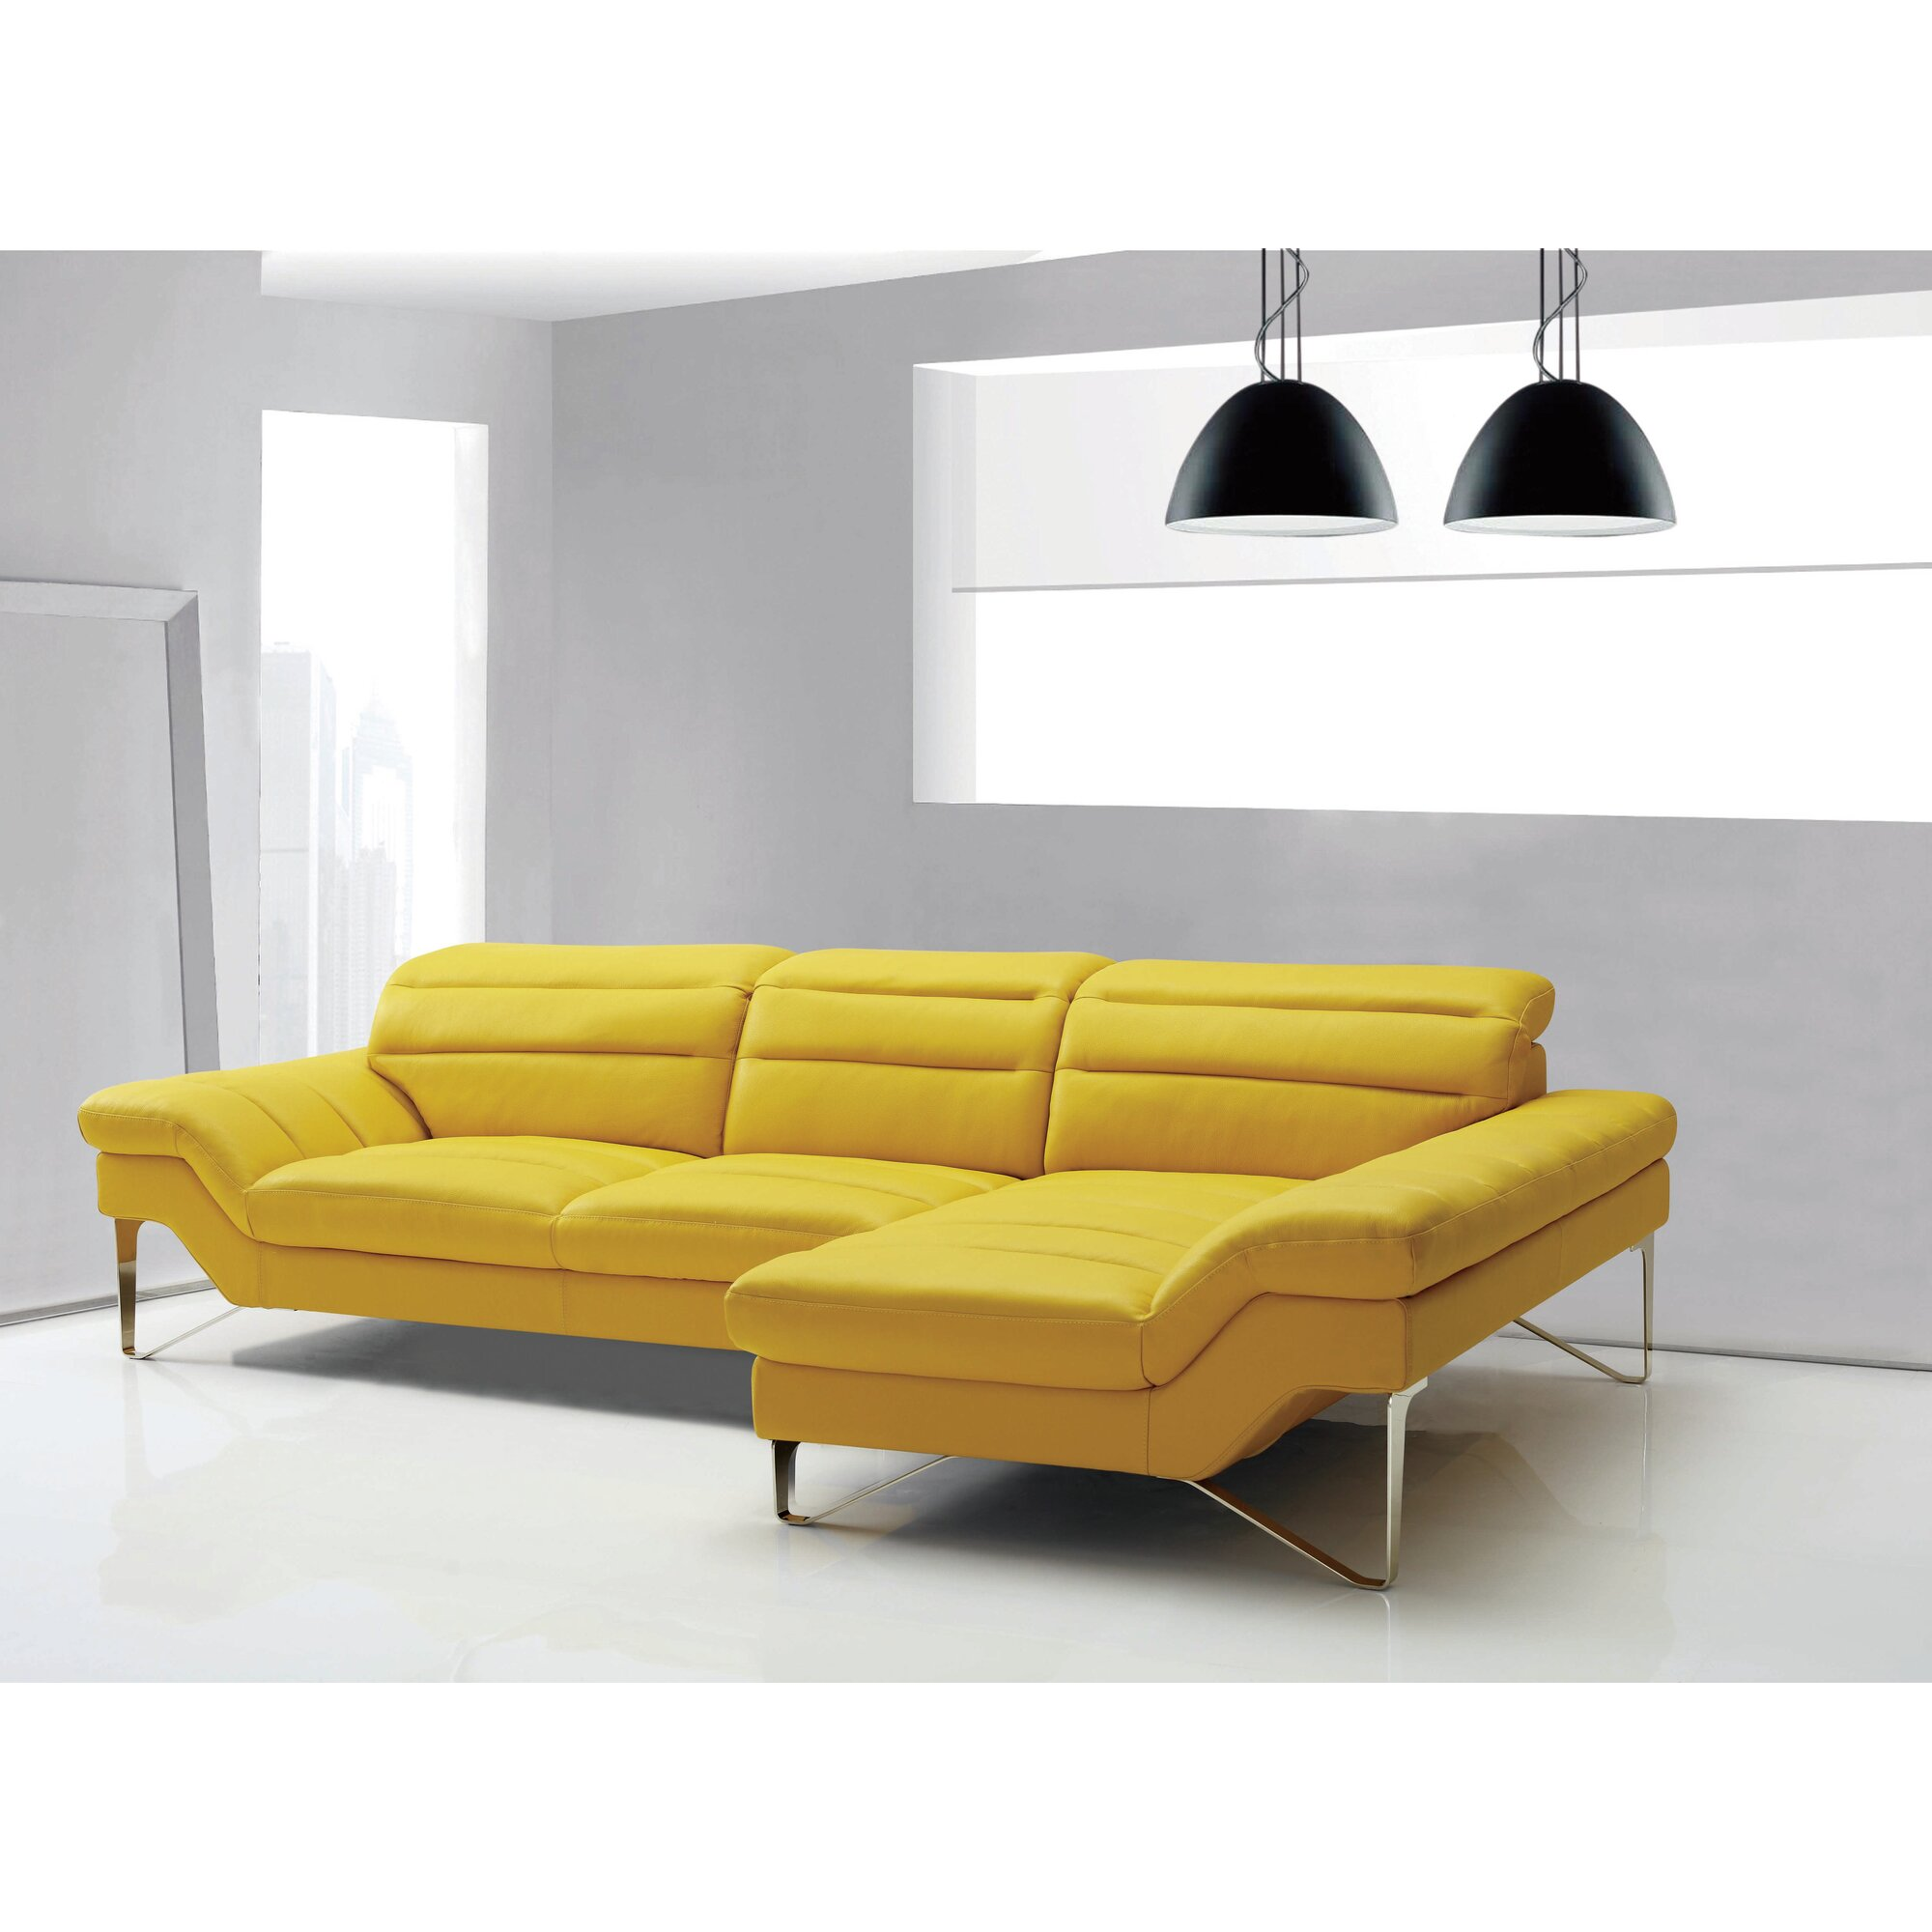 Best Yellow Leather sofa Best